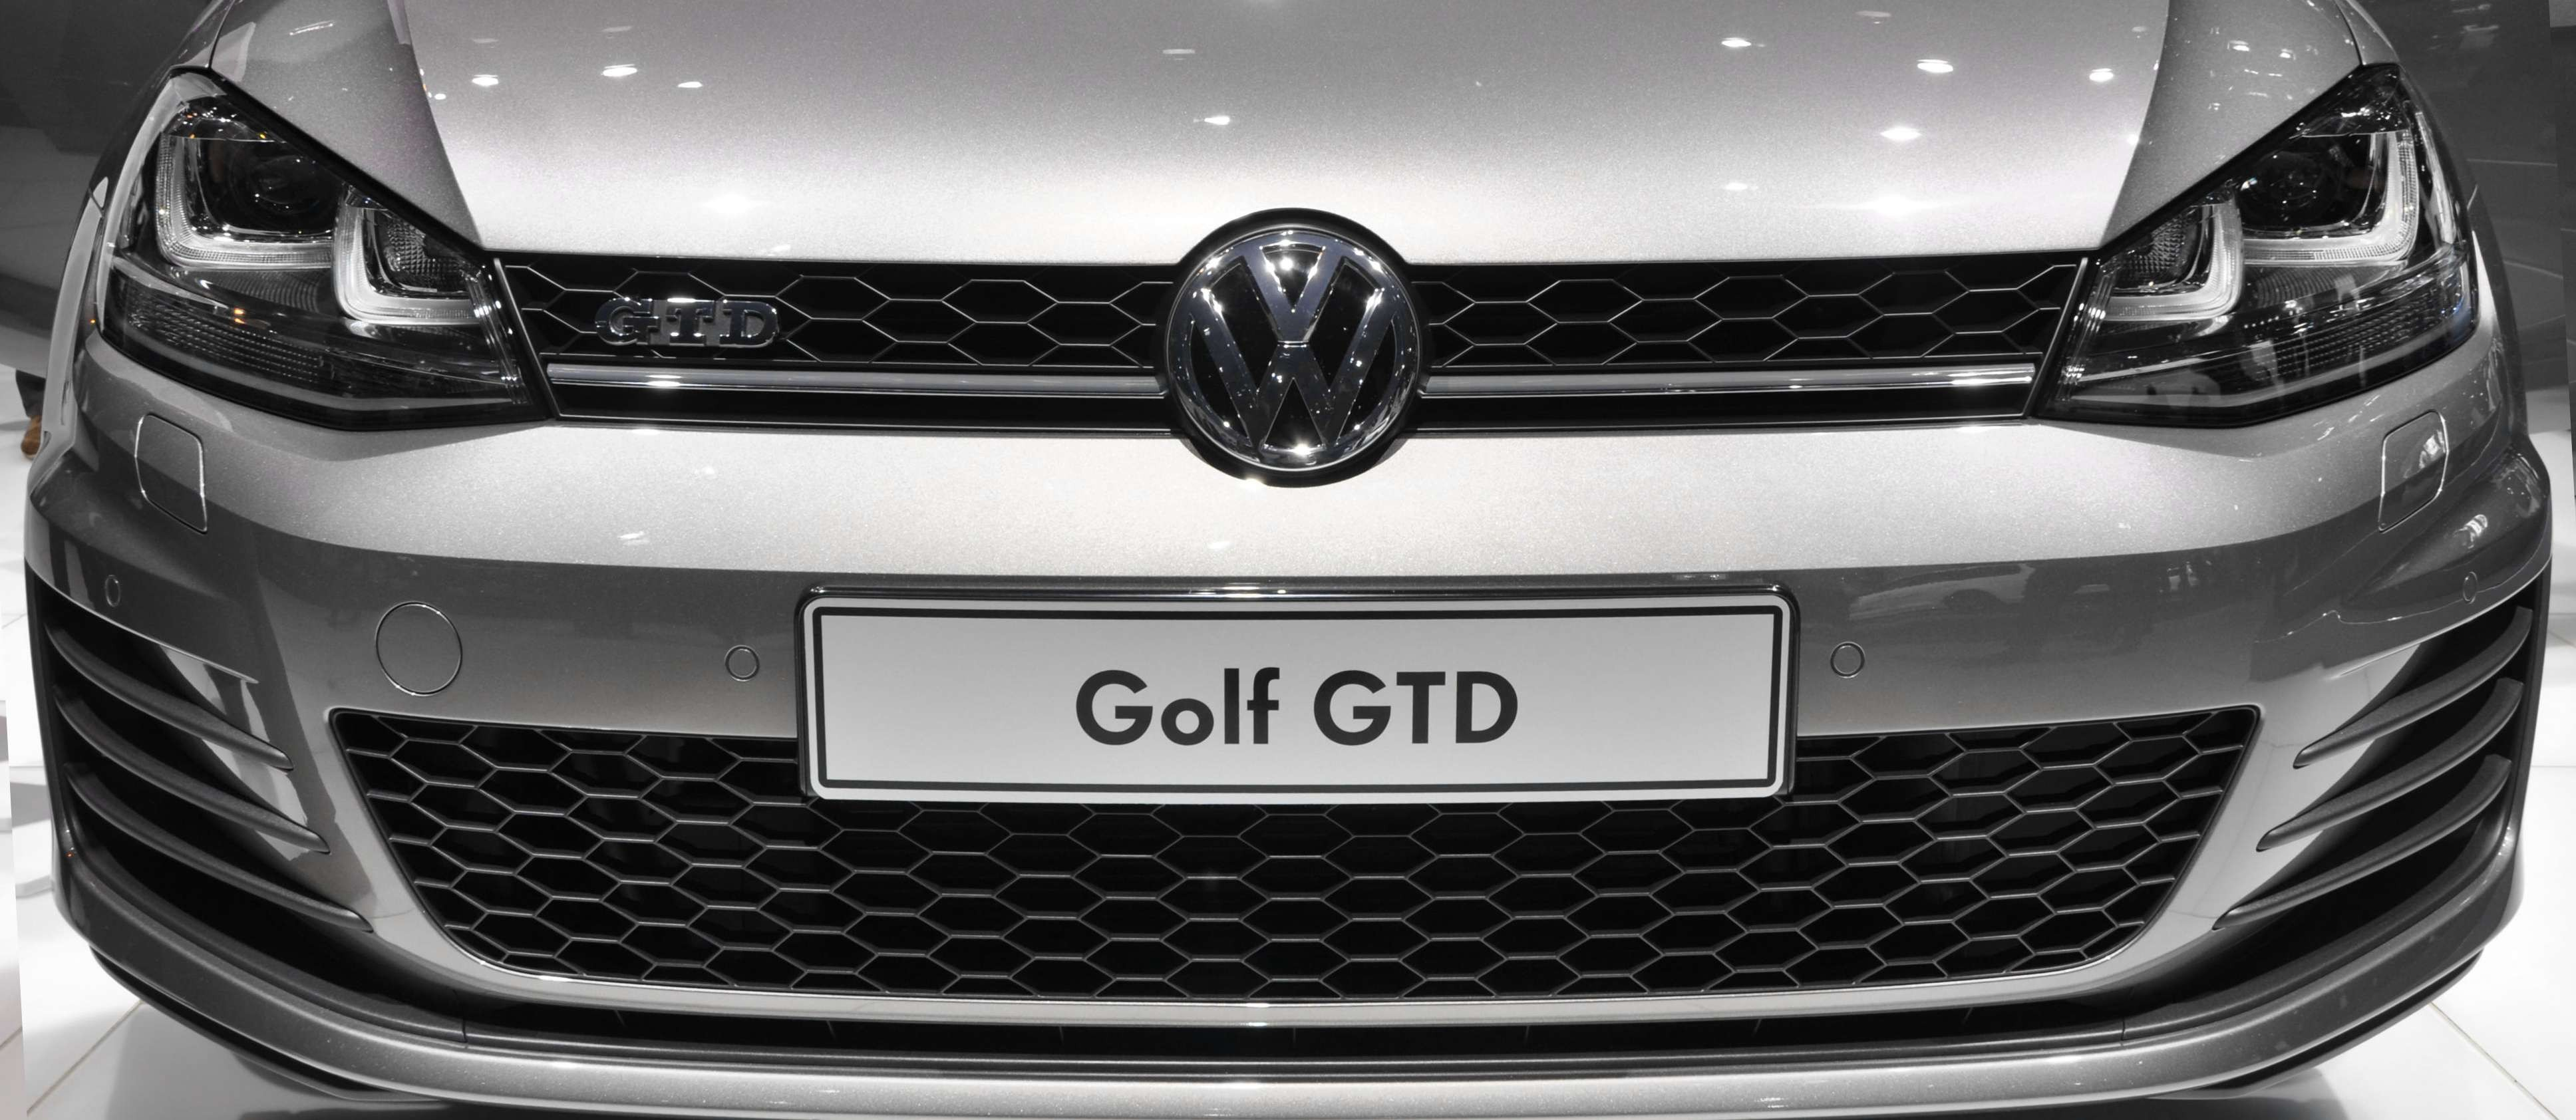 oem vw golf mk7 gtd grille emblem. Black Bedroom Furniture Sets. Home Design Ideas